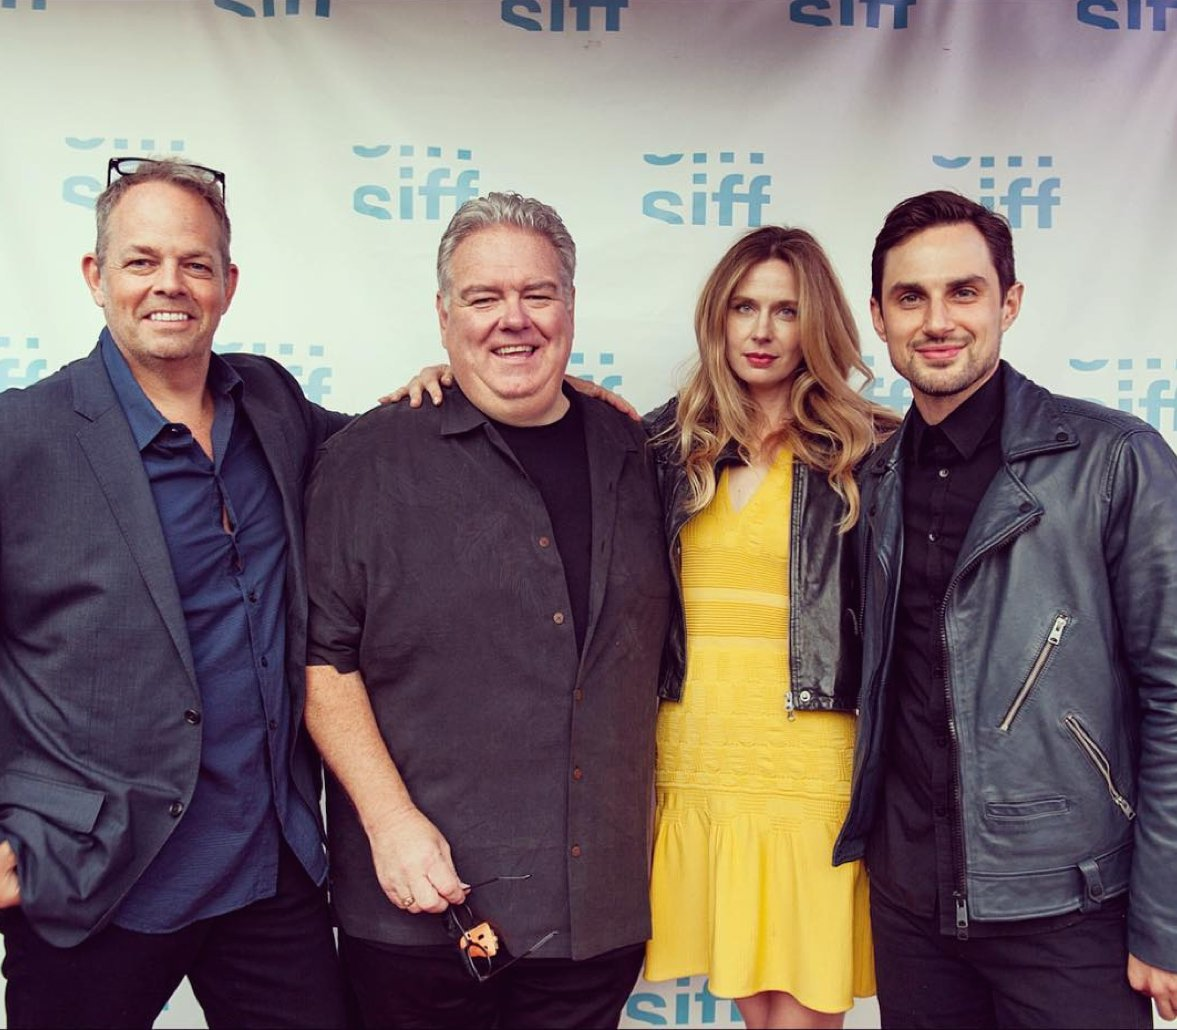 From left to right: Filmmaker Ned Crowley and actors Jim O'Heir, Anne Dudek, and Andrew J. West at the Seattle International Film Festival, where <i>Middle Man</i> won the Grand Jury Prize.